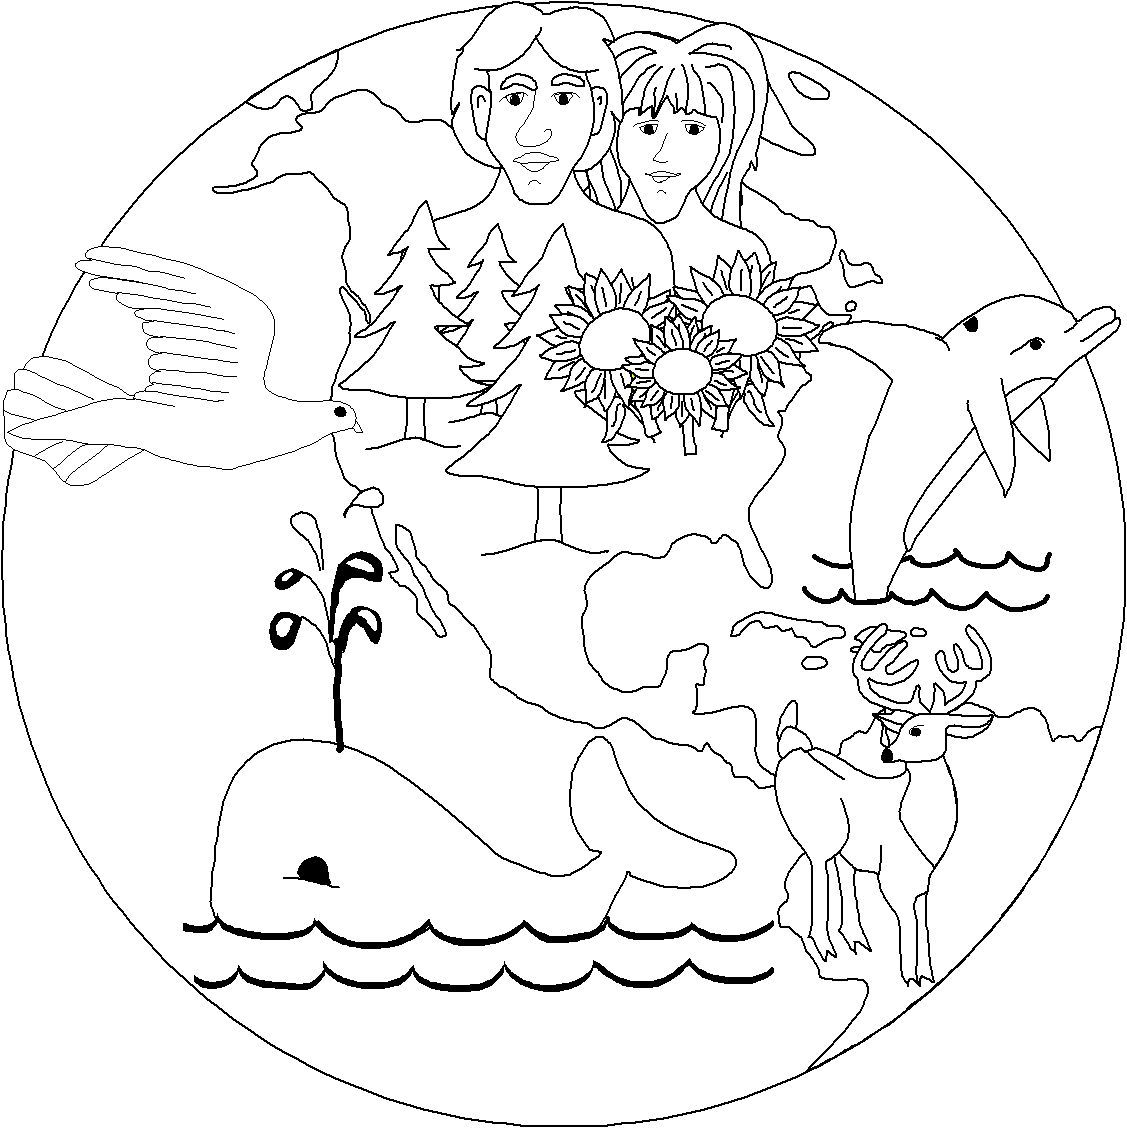 thanksgiving coloring pages religious creation - photo#19